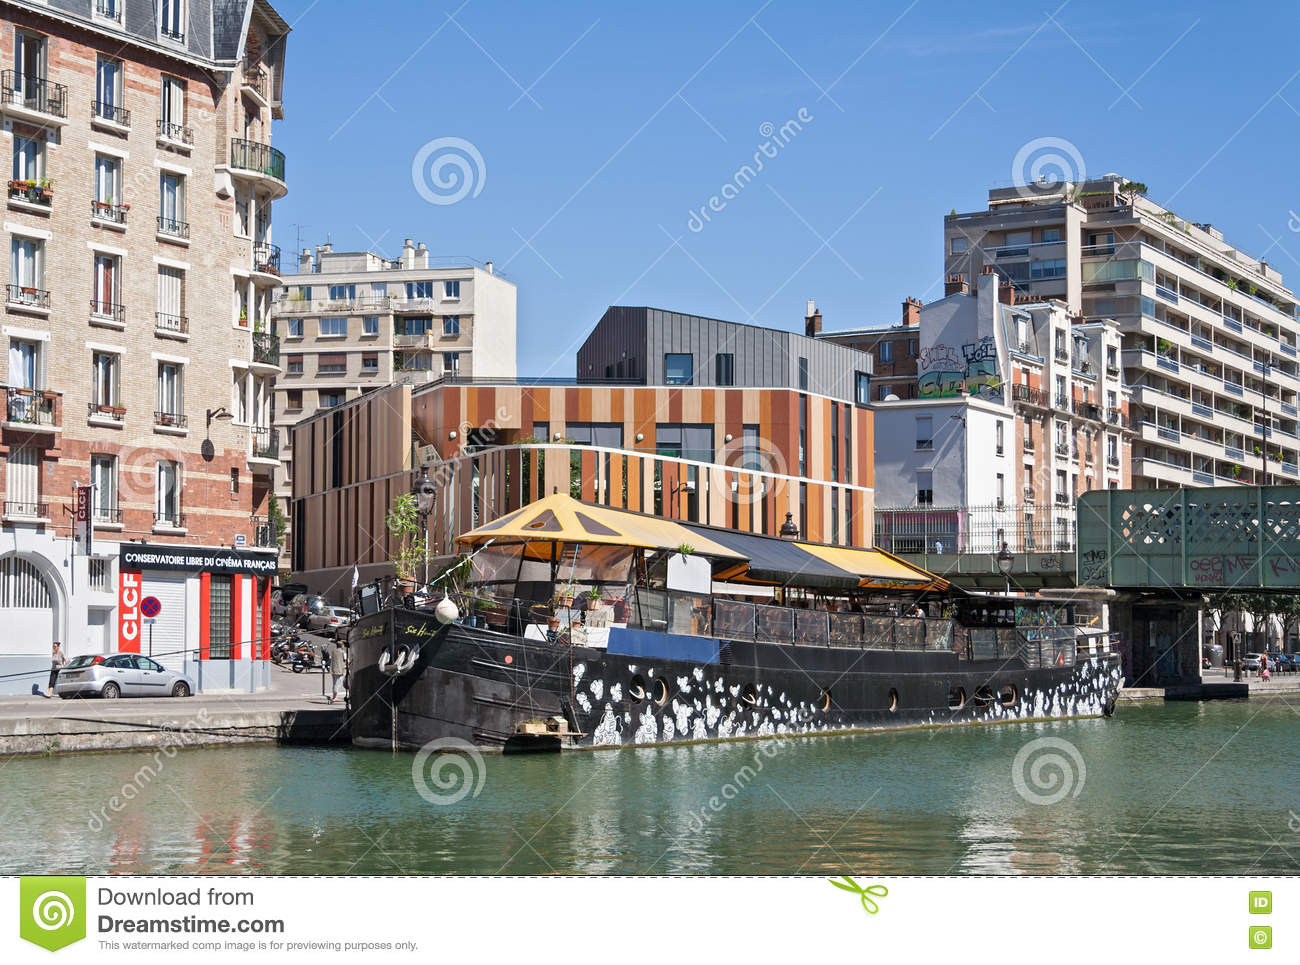 restaurant ship on the saint martin canal in paris editorial stock image image 75742749. Black Bedroom Furniture Sets. Home Design Ideas